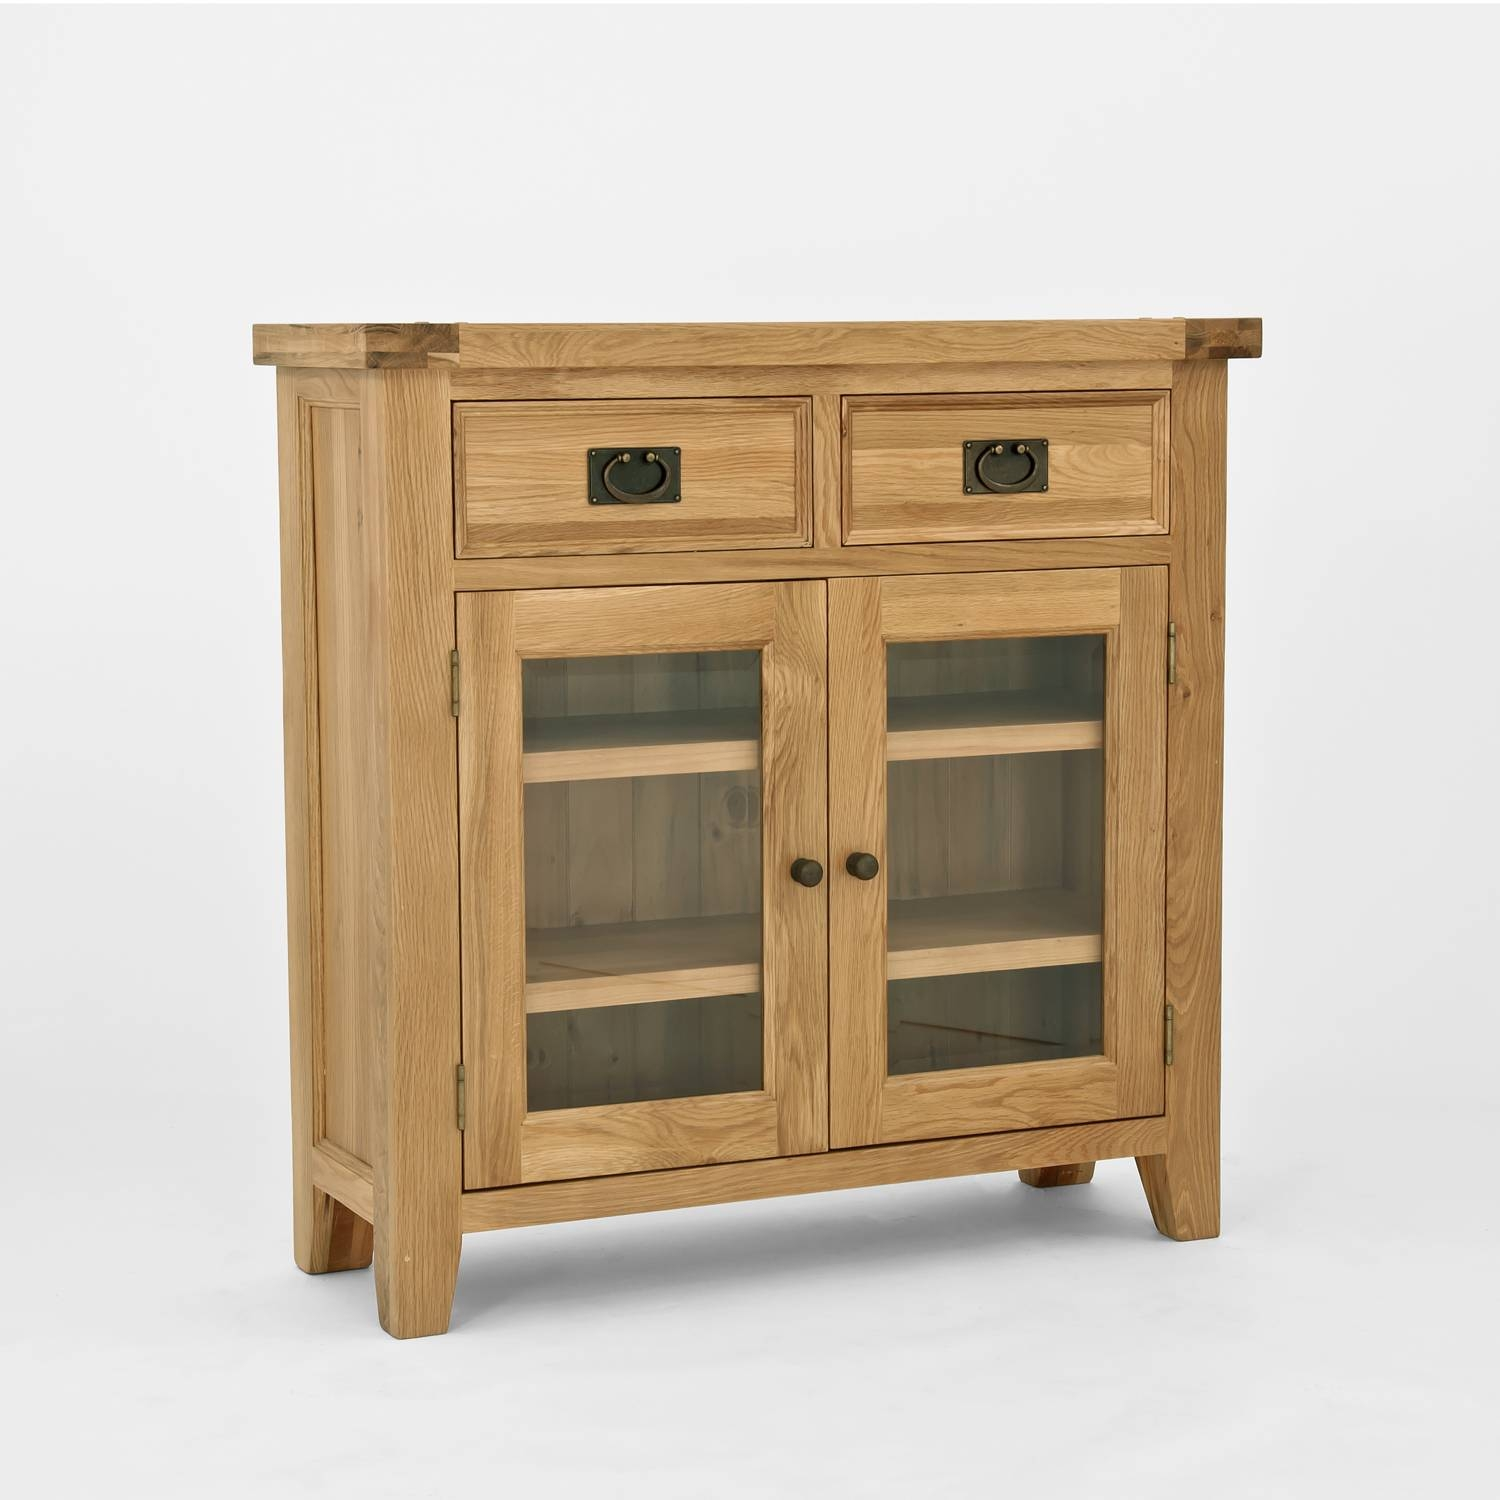 Chiltern Oak Small Sideboard/bookcase With Glass Doors throughout Narrow Oak Sideboards (Image 6 of 30)